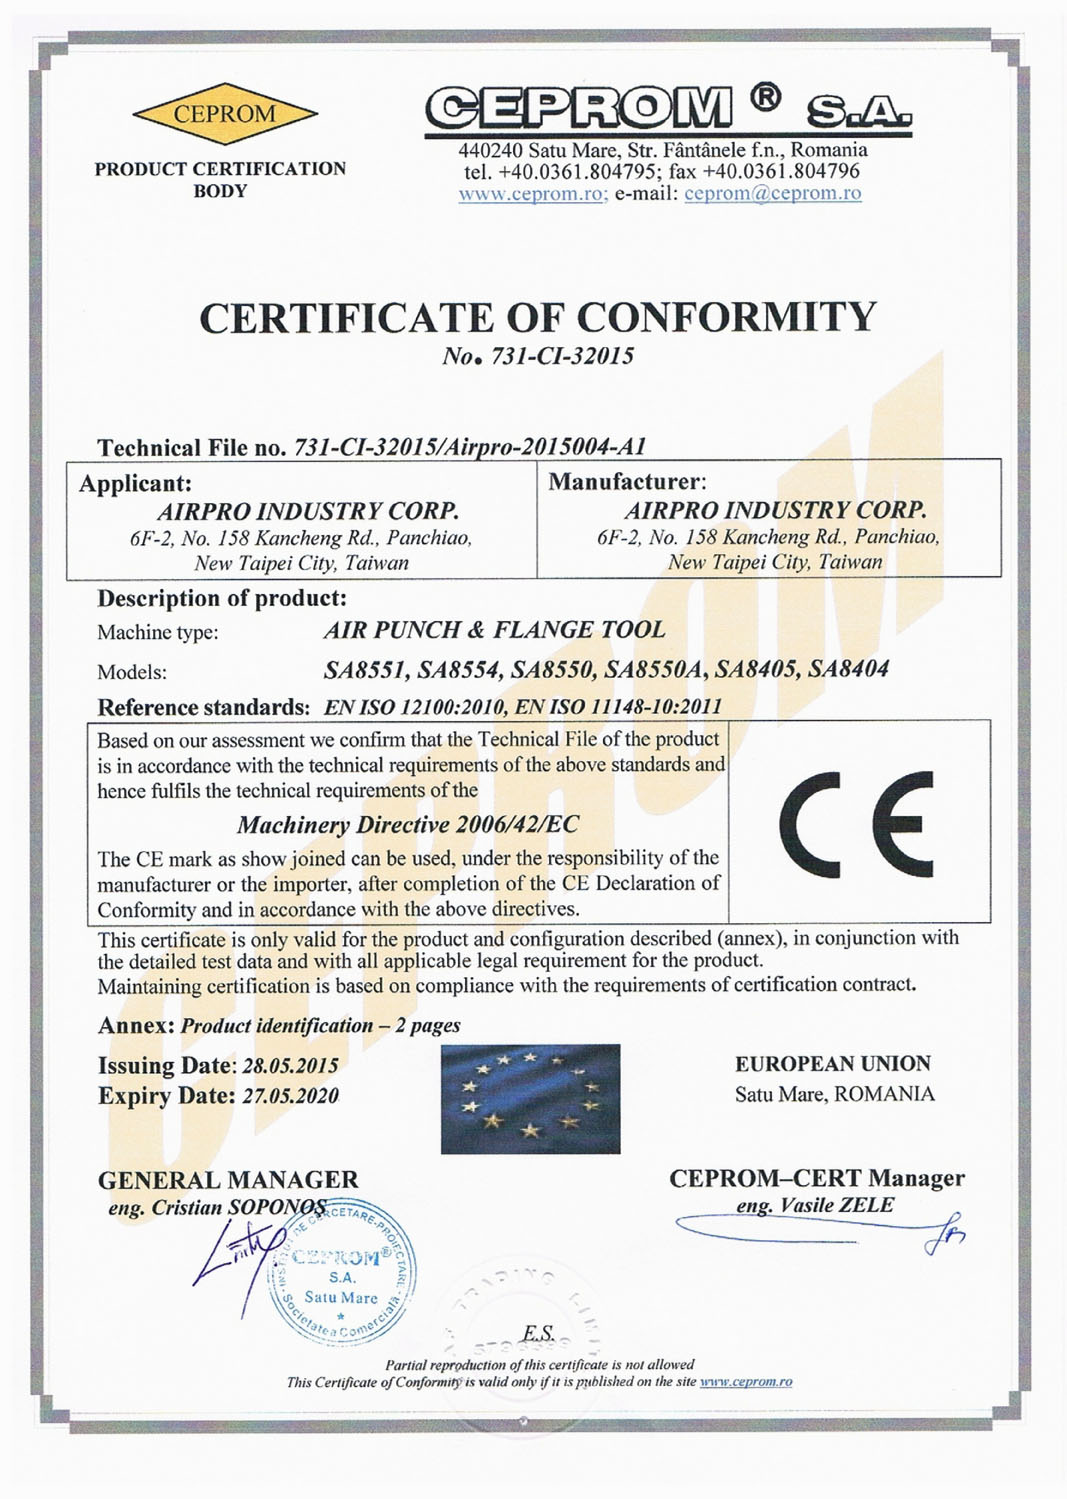 CERTIFICATE OF CONFORMITY-AIR PUNCH & FLANGE TOOL